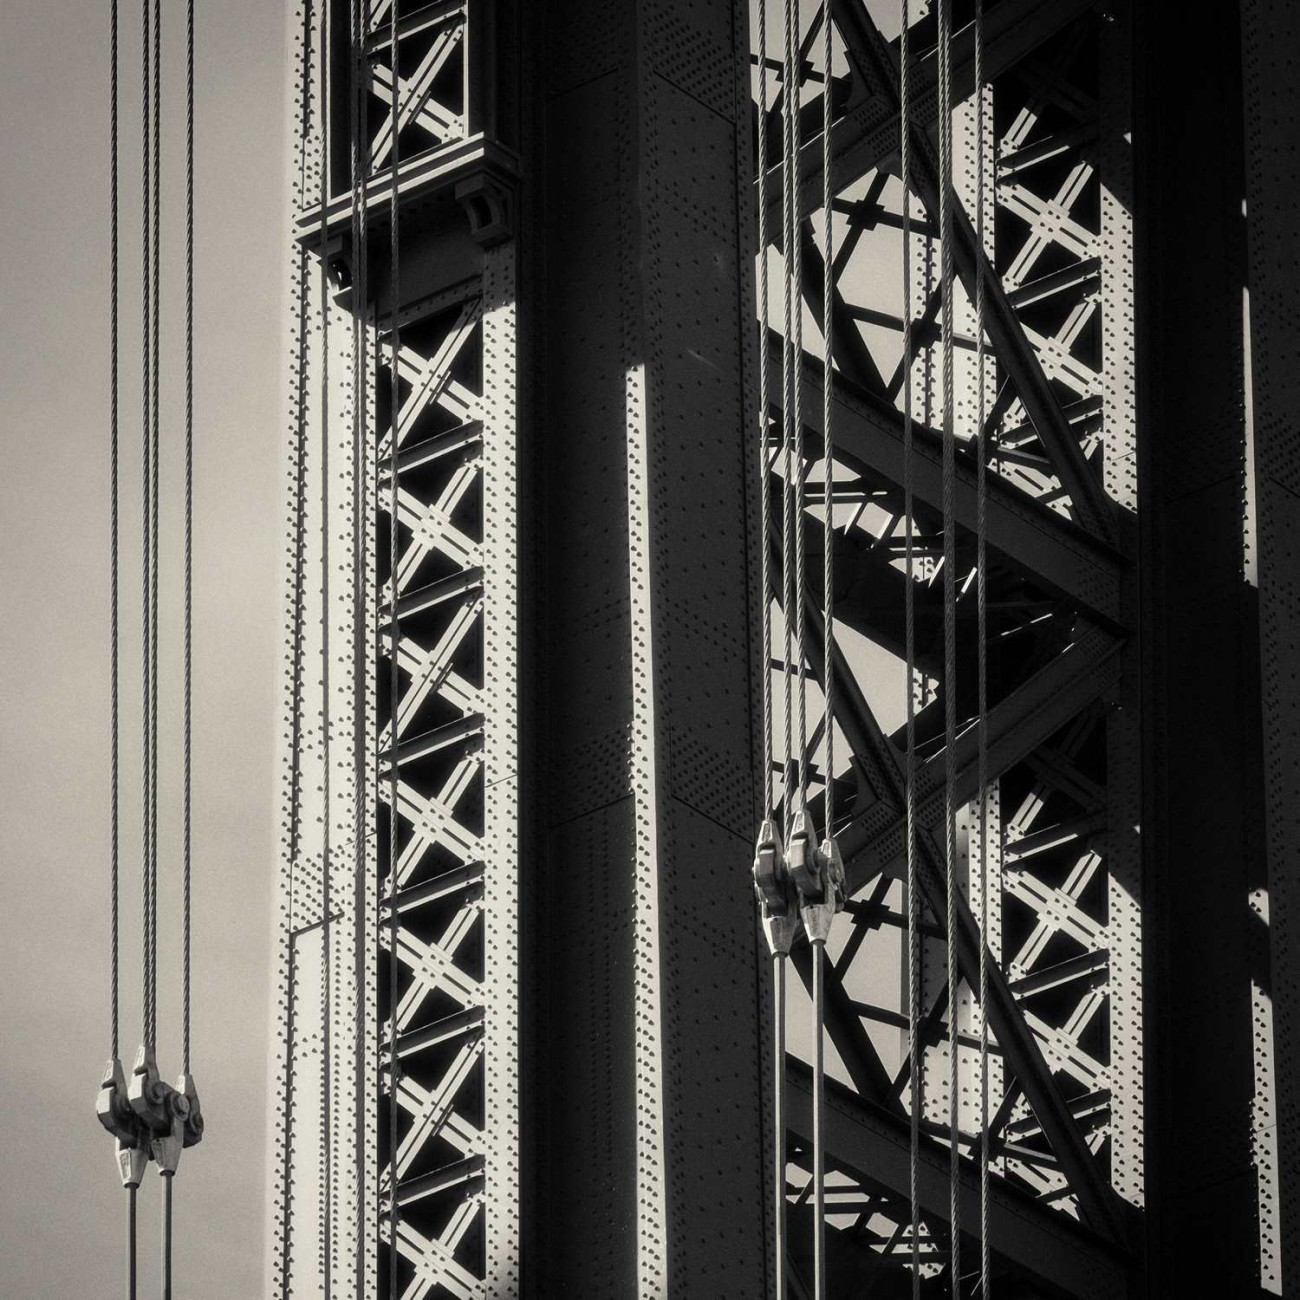 Manhattan Bridge detail, New York, 2013